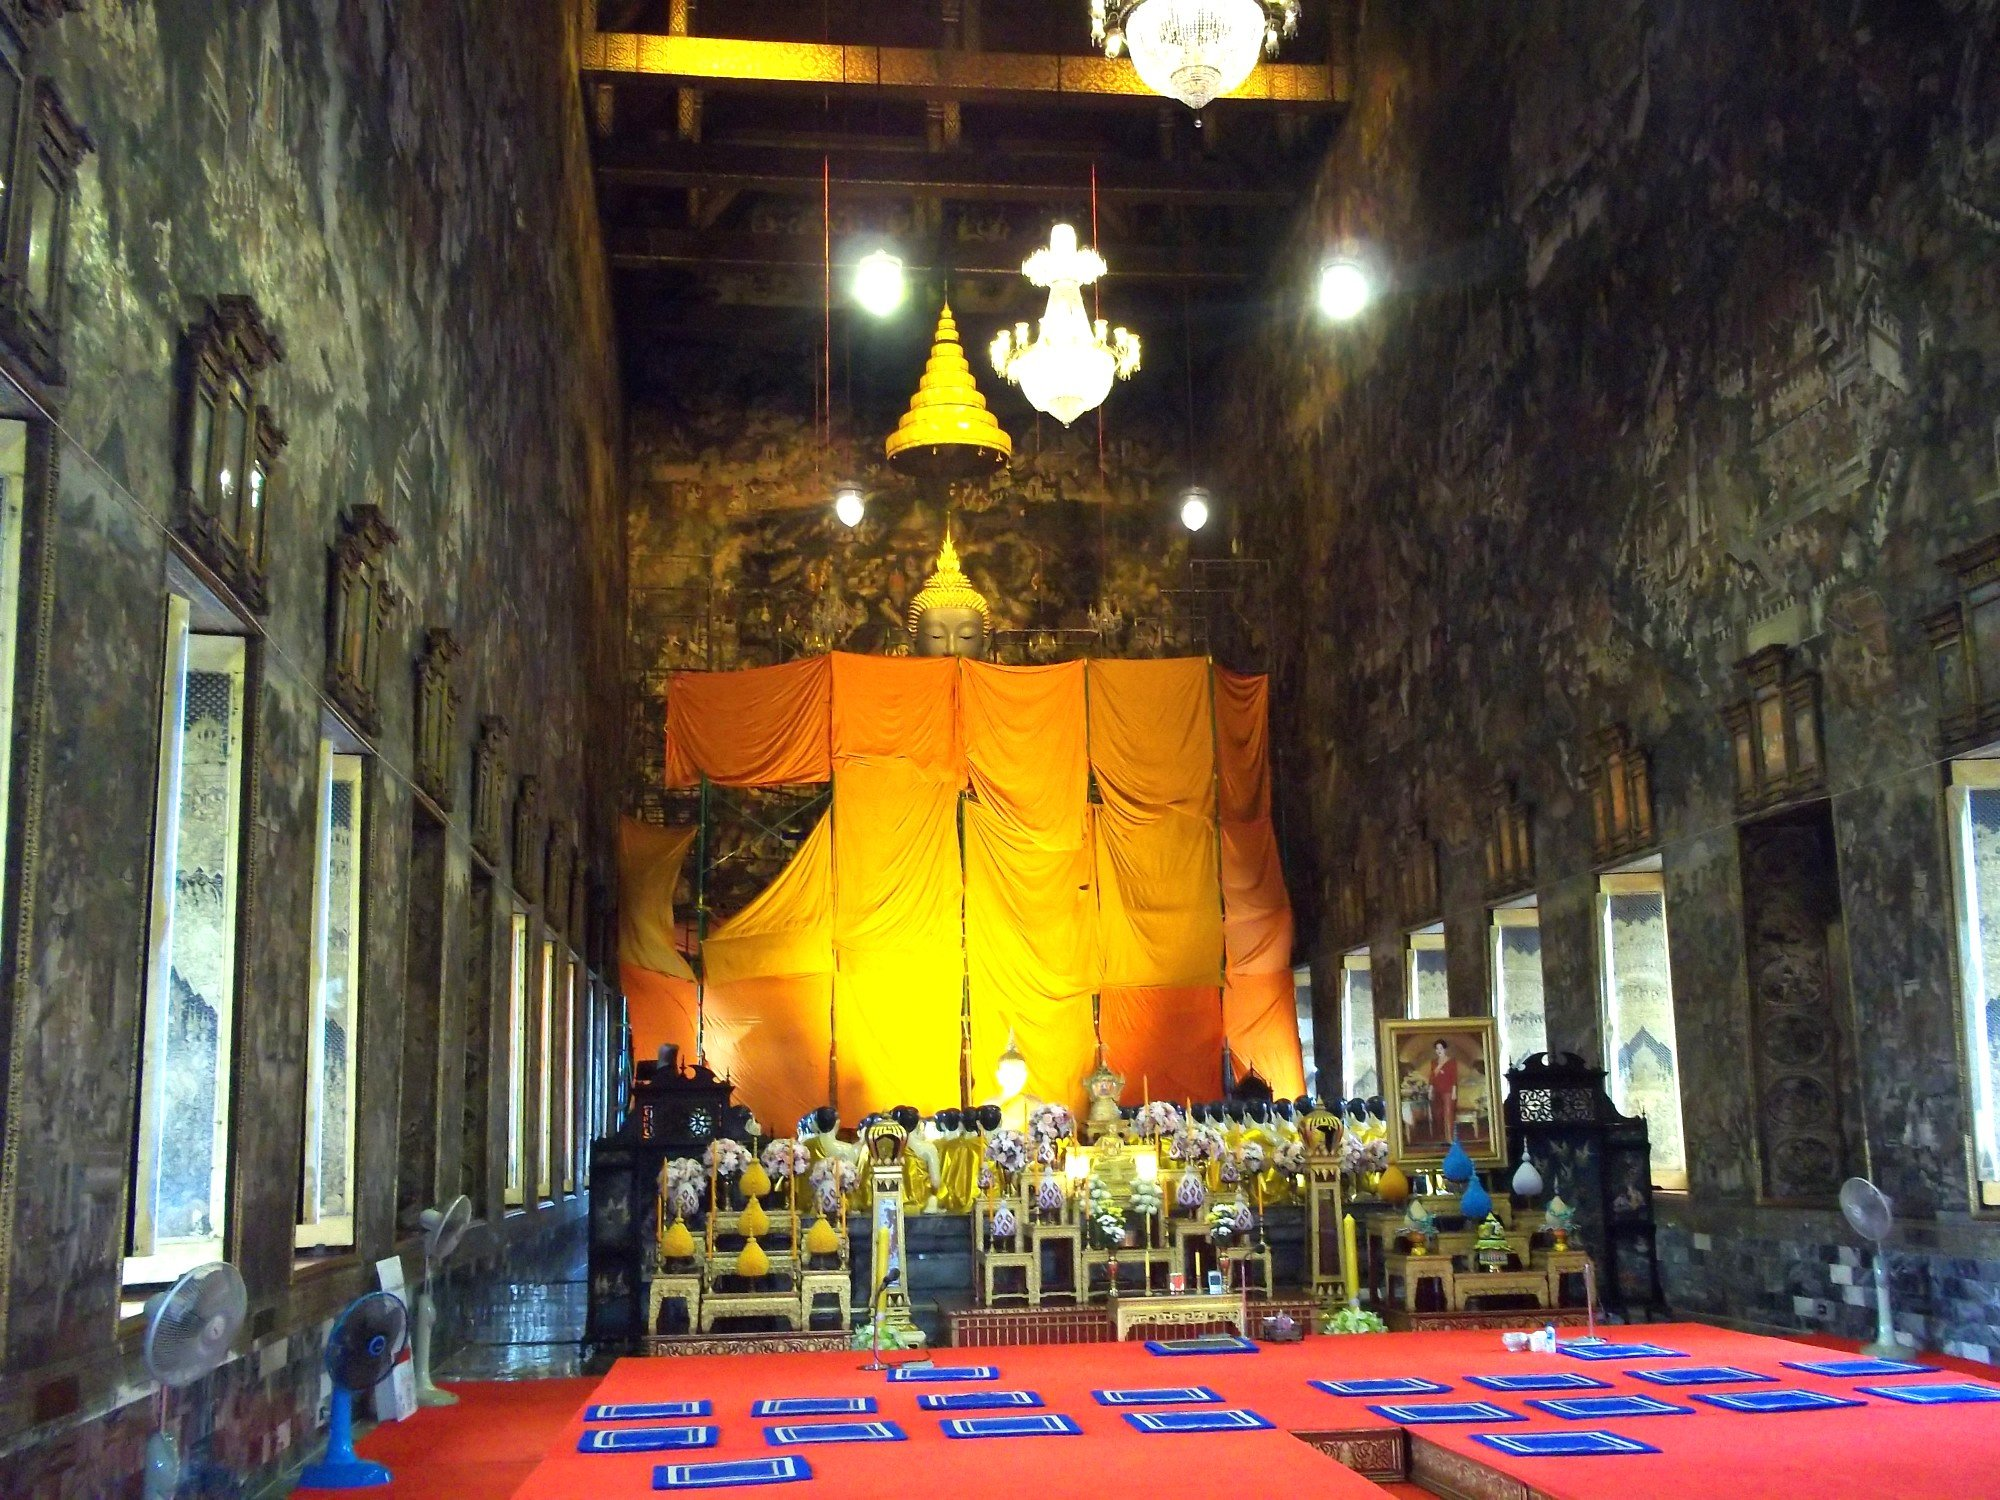 Inside the Ordination Hall at Wat Suthat Thepwararam